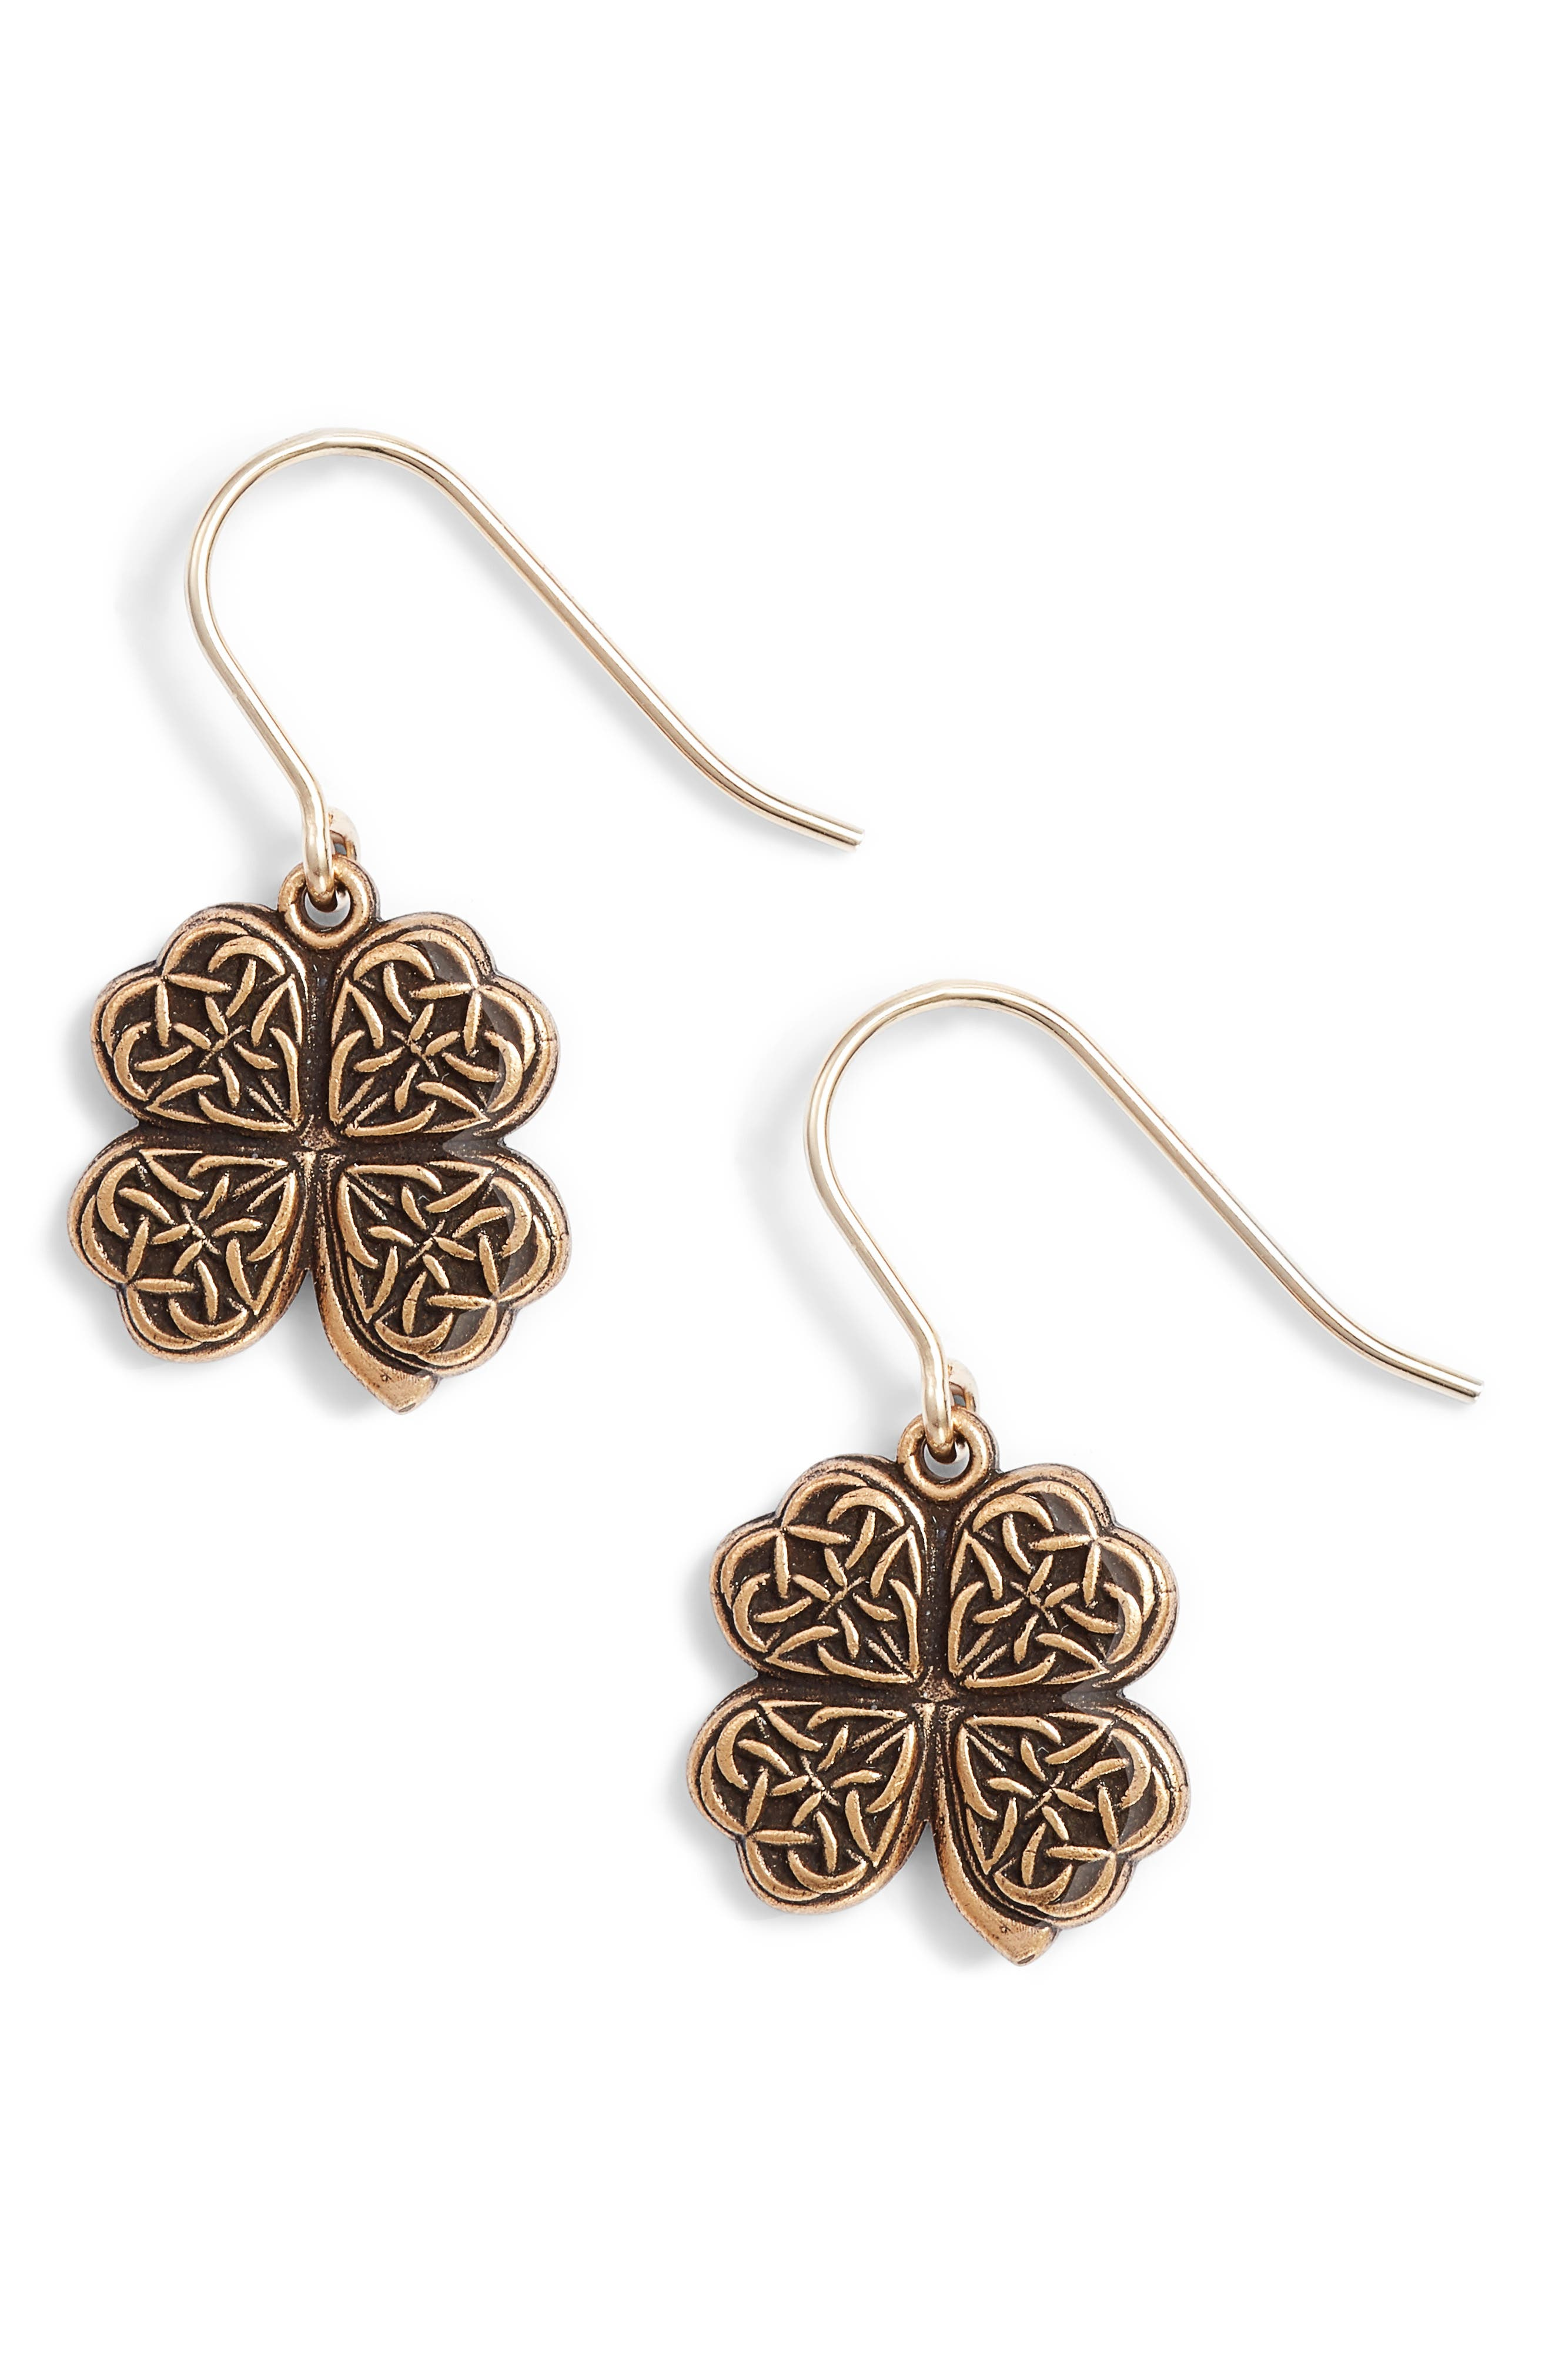 Four Leaf Clover Drop Earrings,                         Main,                         color, Gold